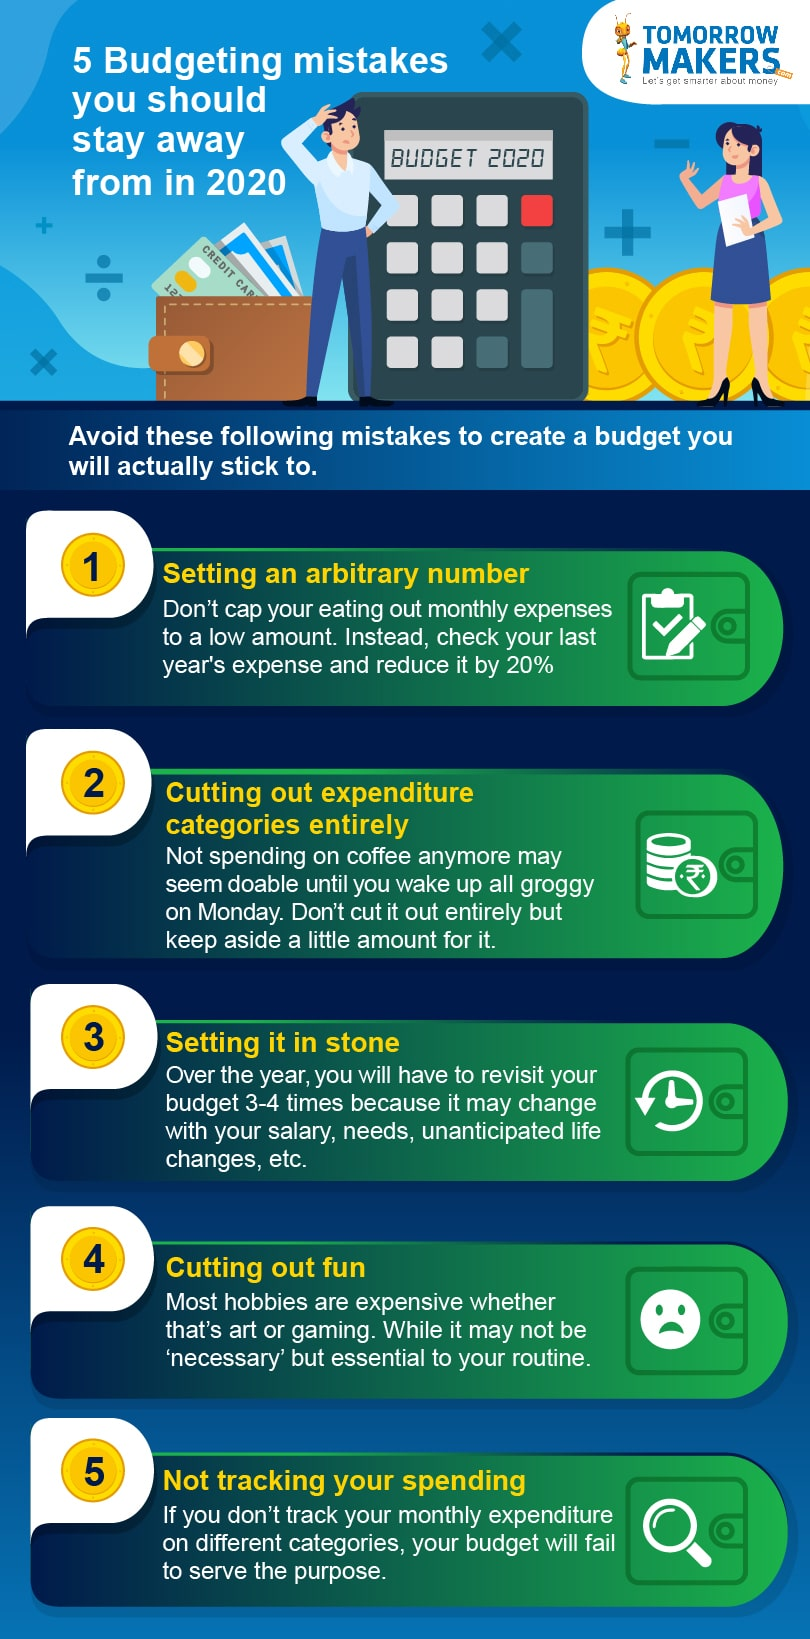 5 Budgeting mistakes you should stay away from in 2020